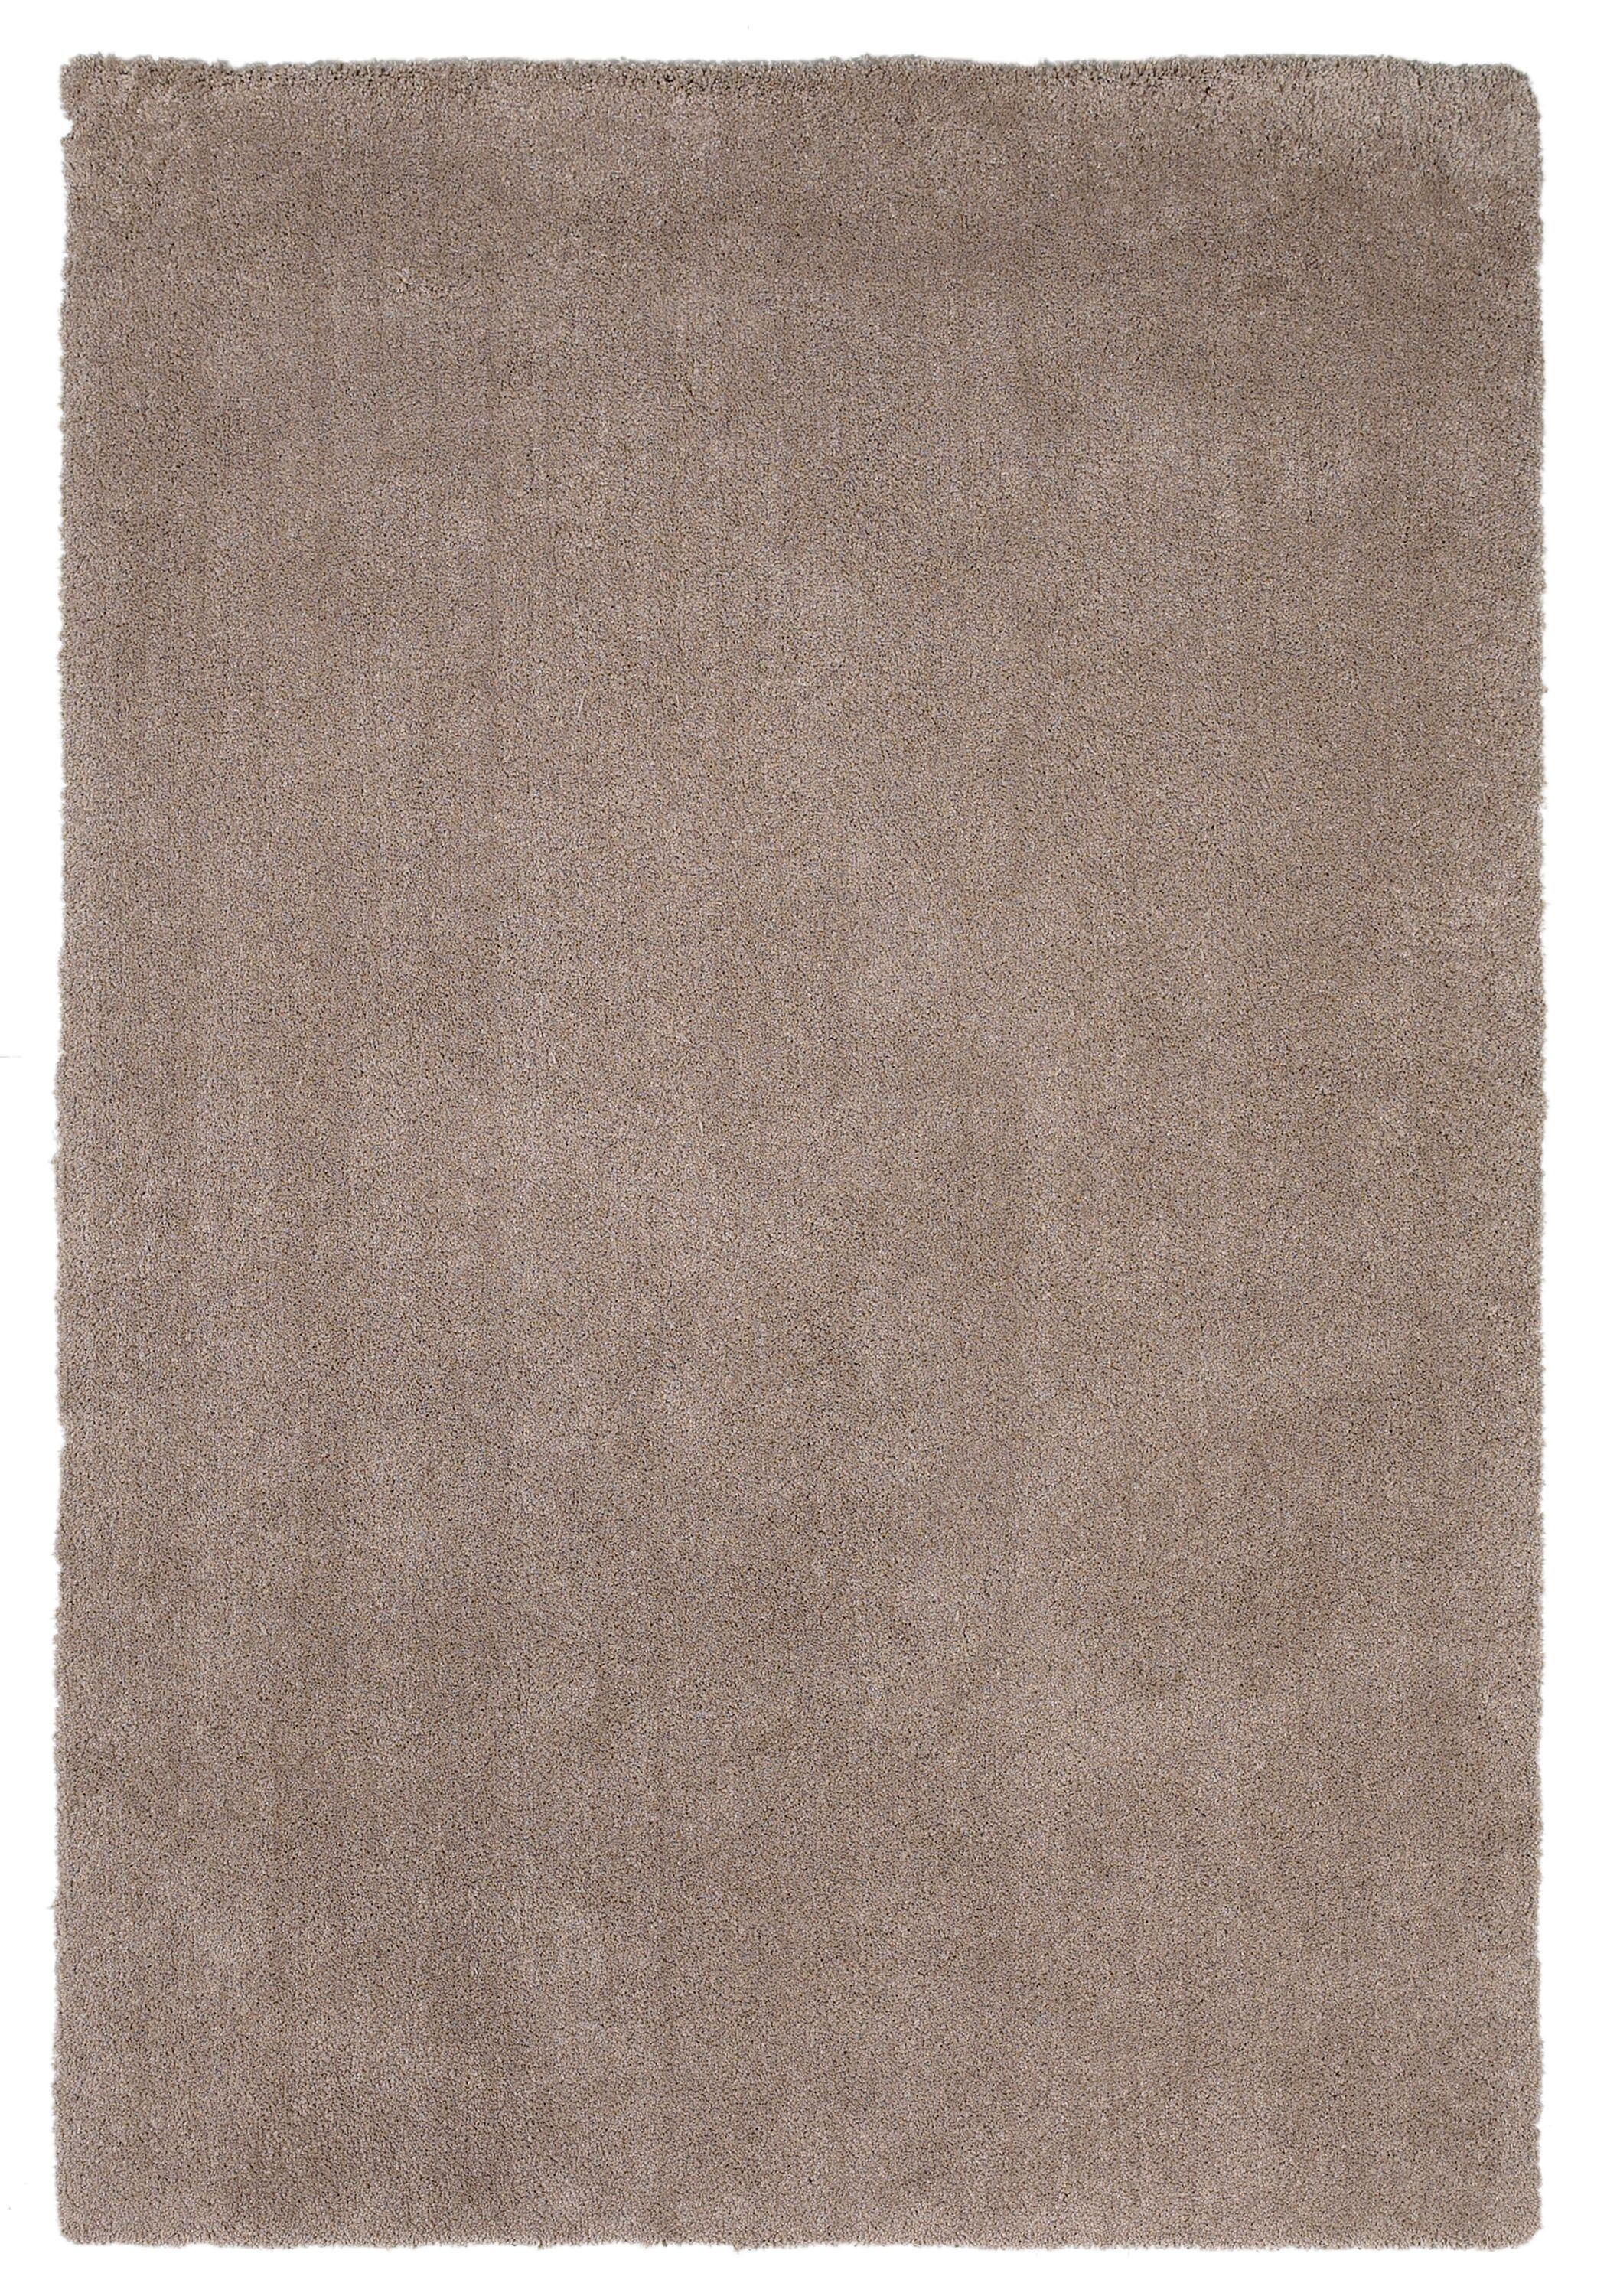 Bouvier Beige Area Rug Rug Size: Rectangle 5' x 7'